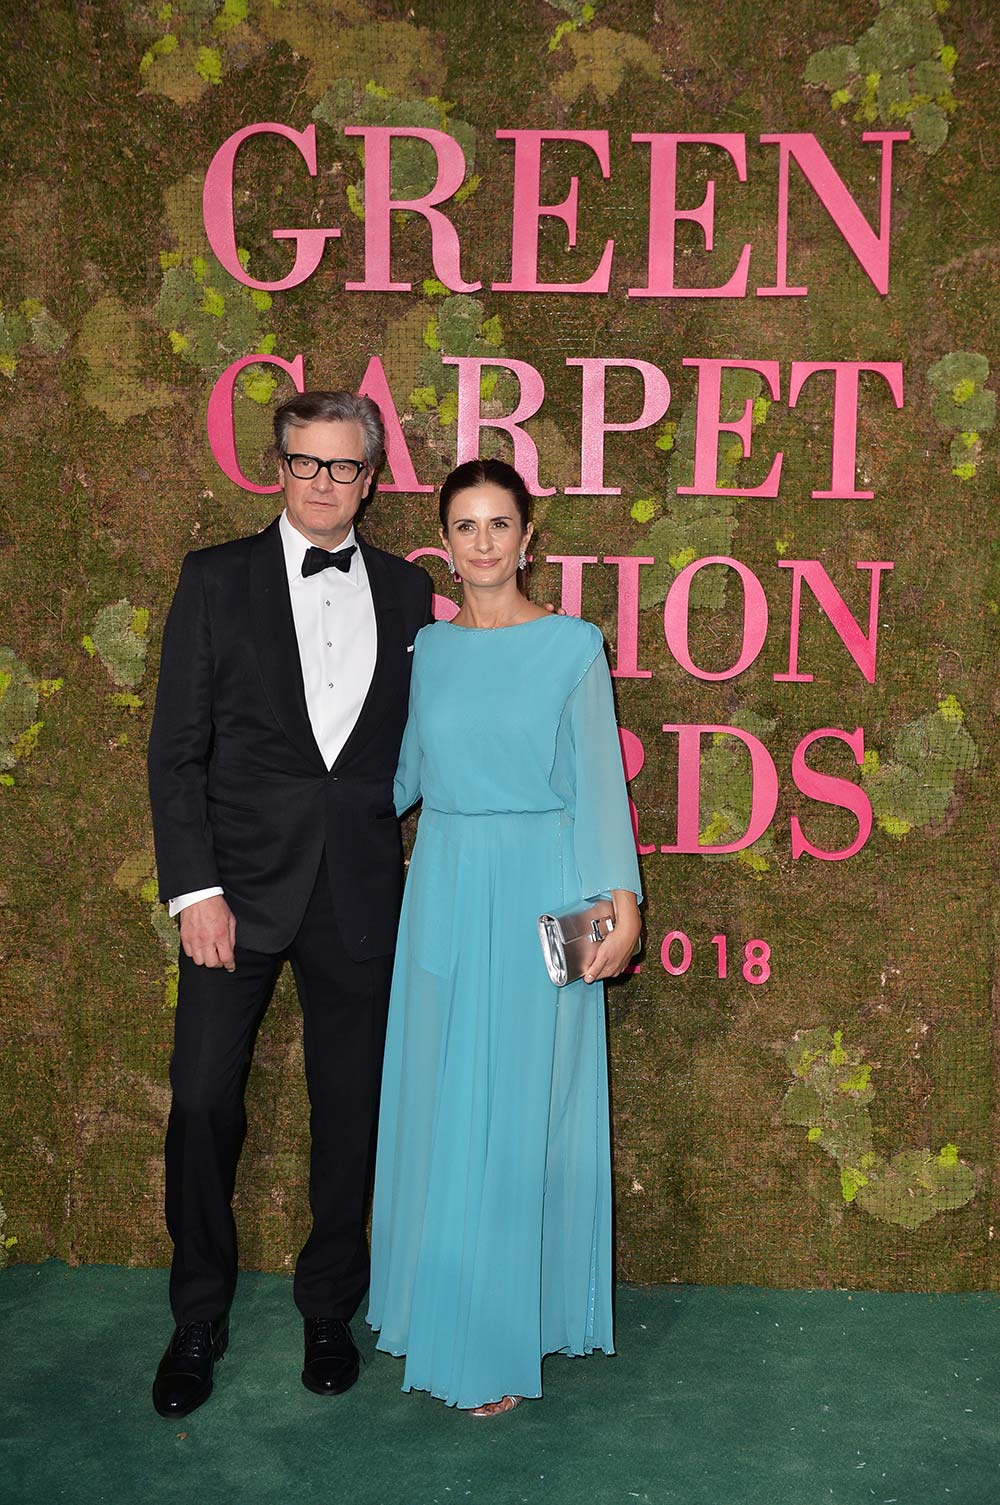 Green Carpet Fashion Awards 2018 - Livia and Colin Firth - Hair Massimo Serini - Makeup Emanuela Di Giammarco